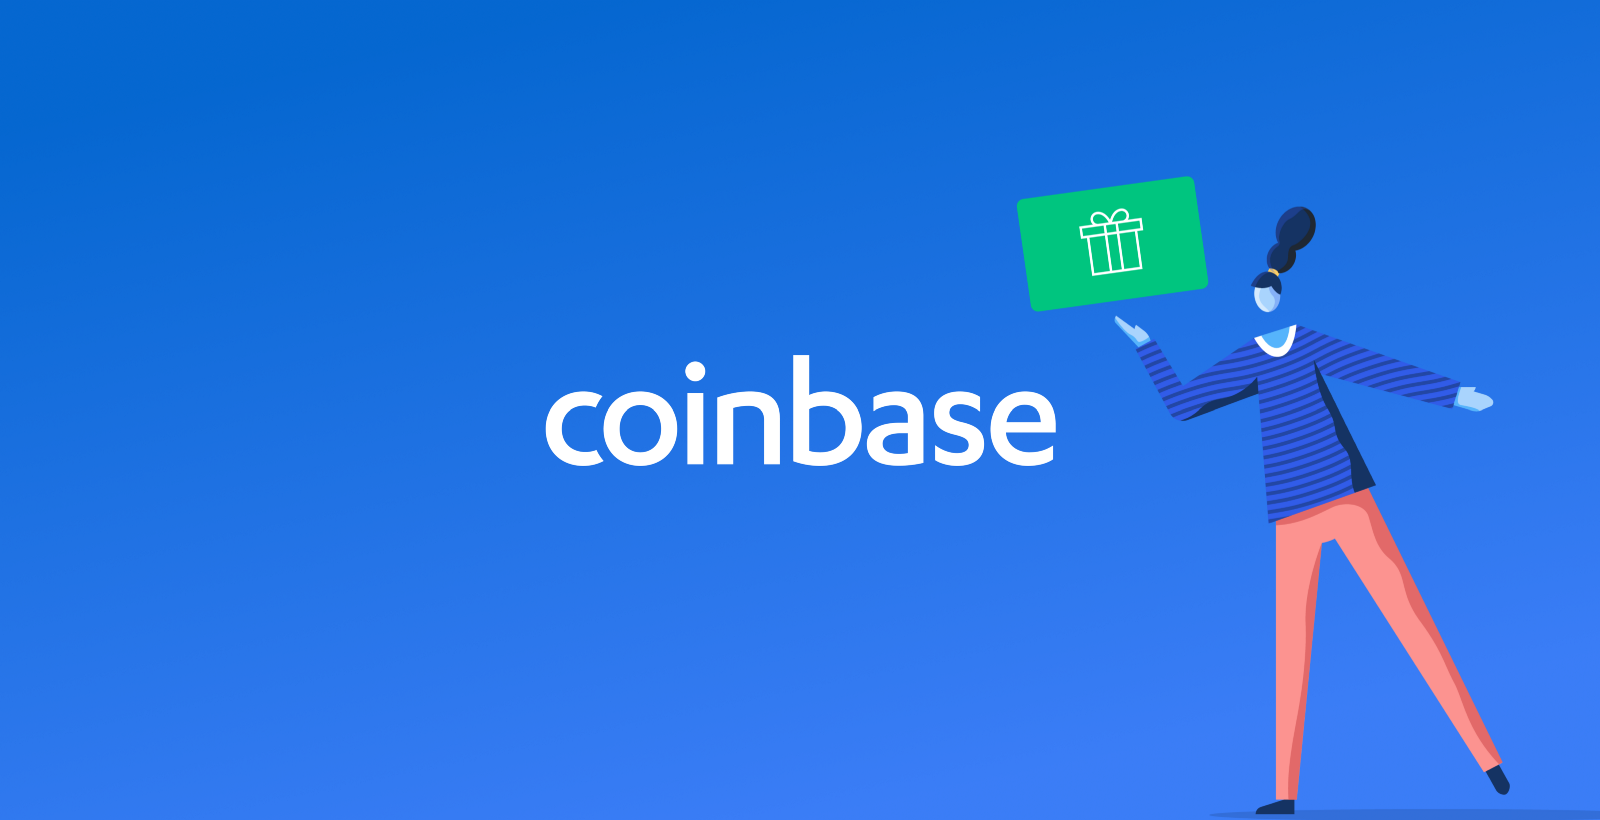 Announcing a new way to spend your Coinbase crypto — e-gift cards